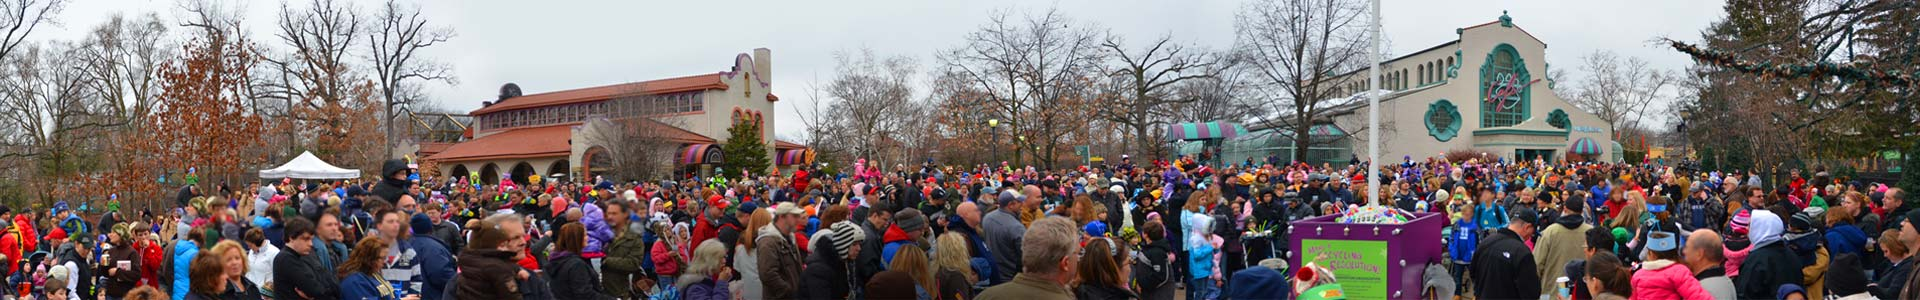 Image of crowd gathered for the countdown at Noon Years Eve